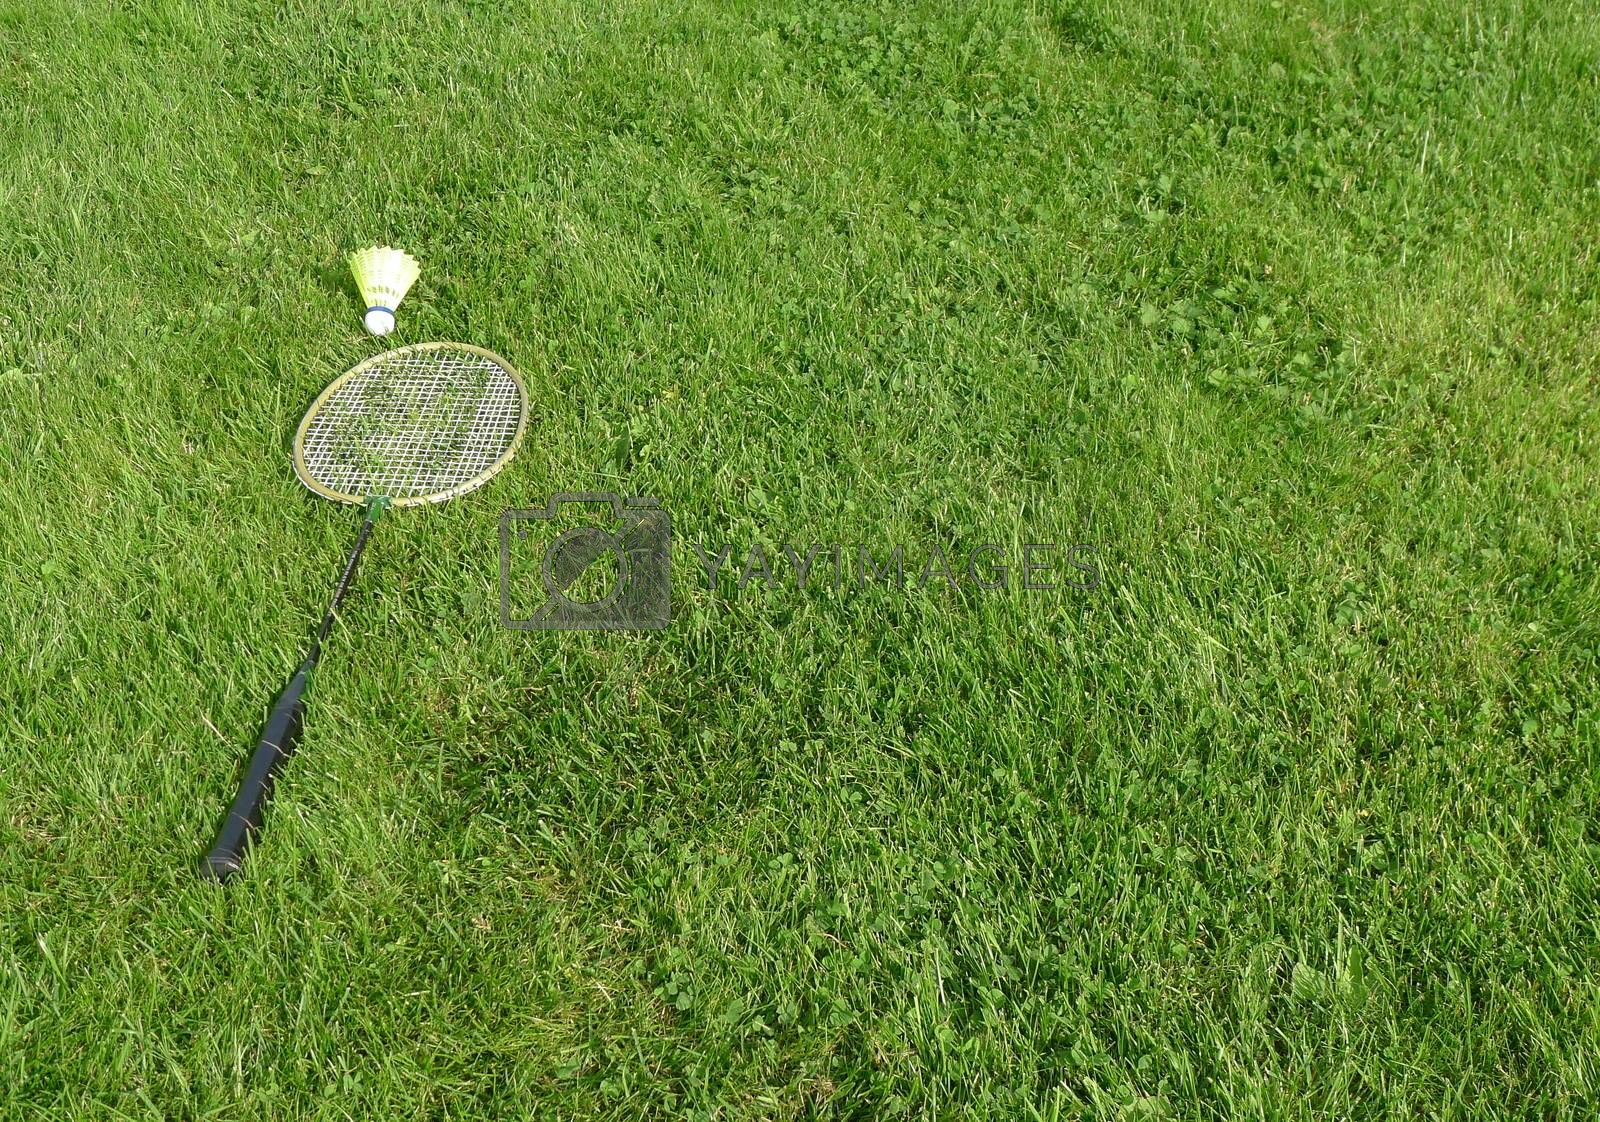 Badminton racket on grass